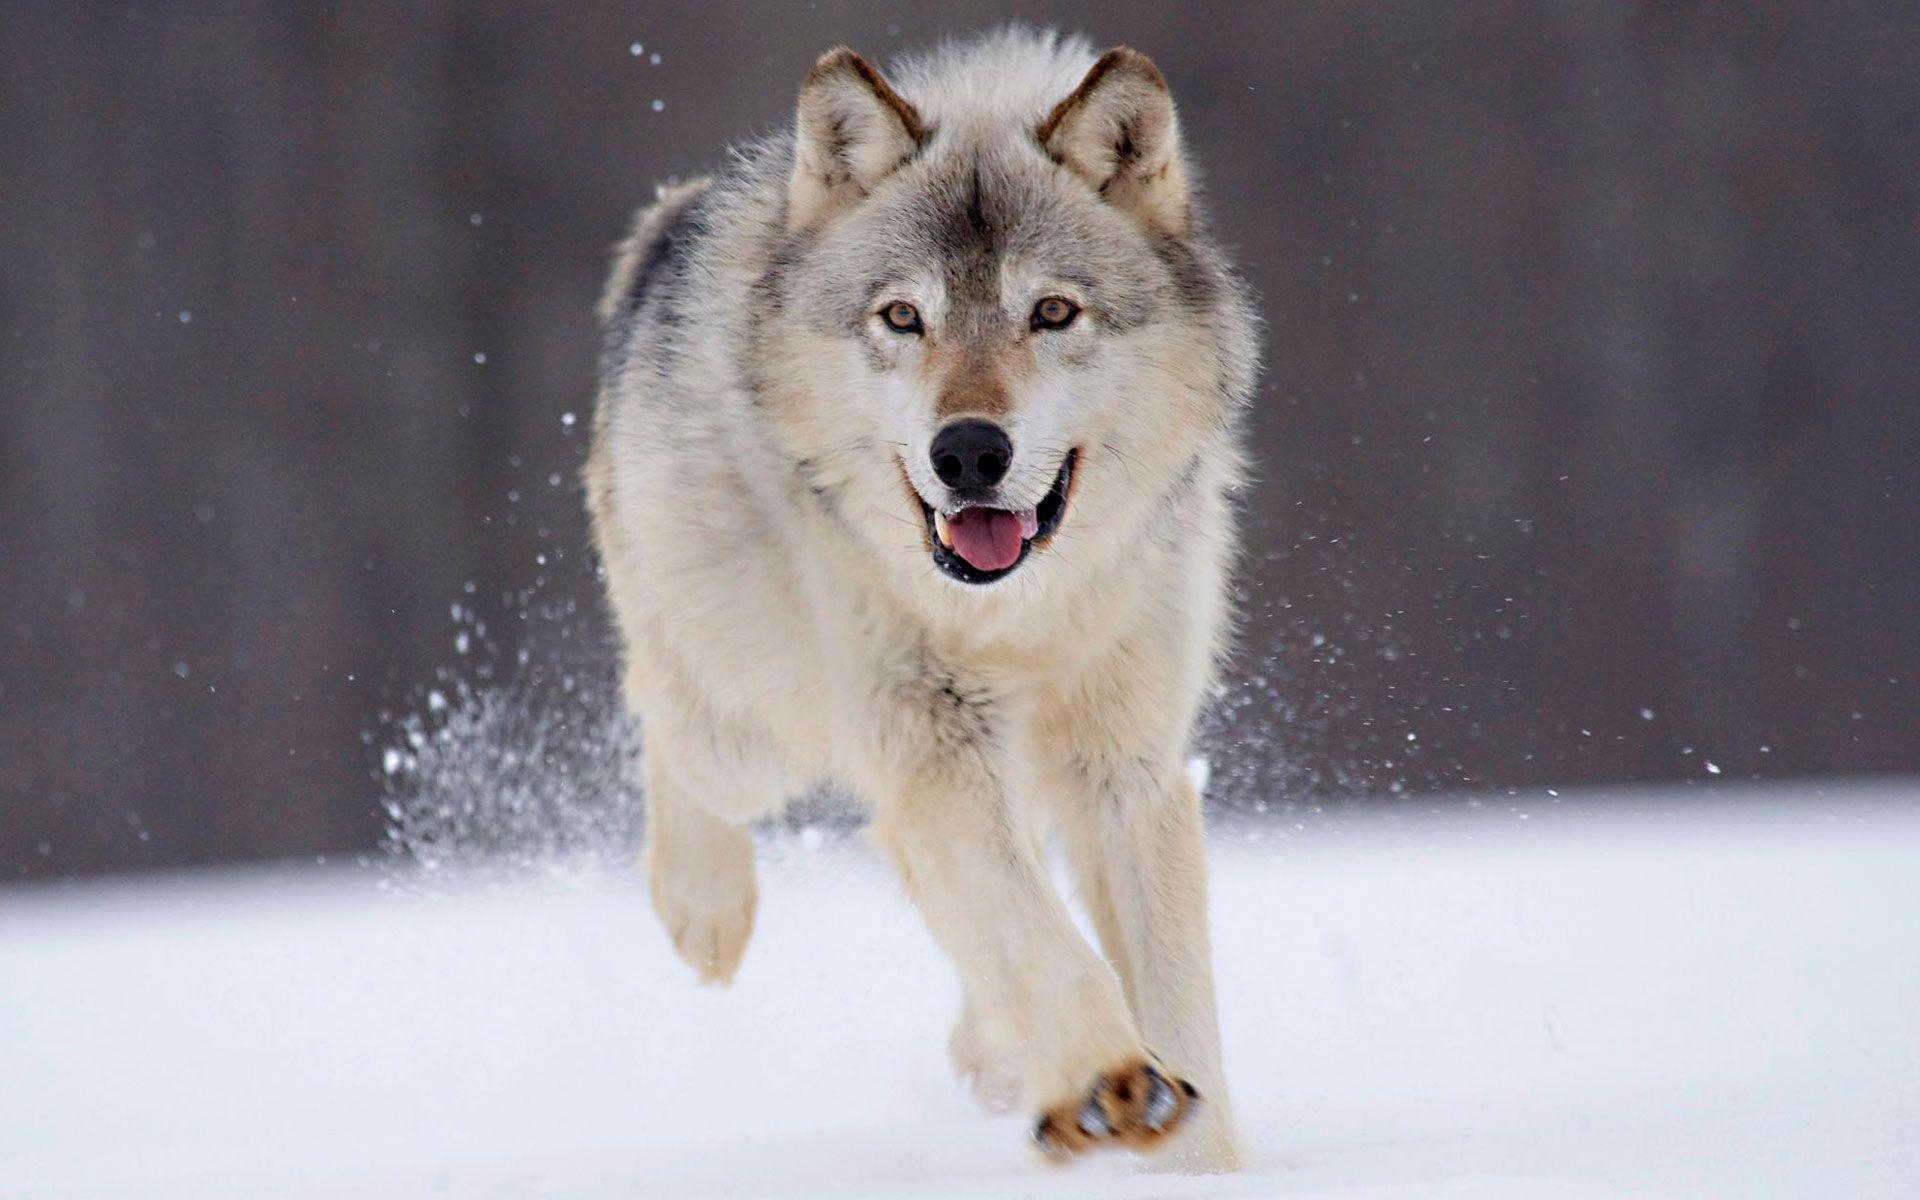 Wolf HD wallpapers - A beautiful dog like animal